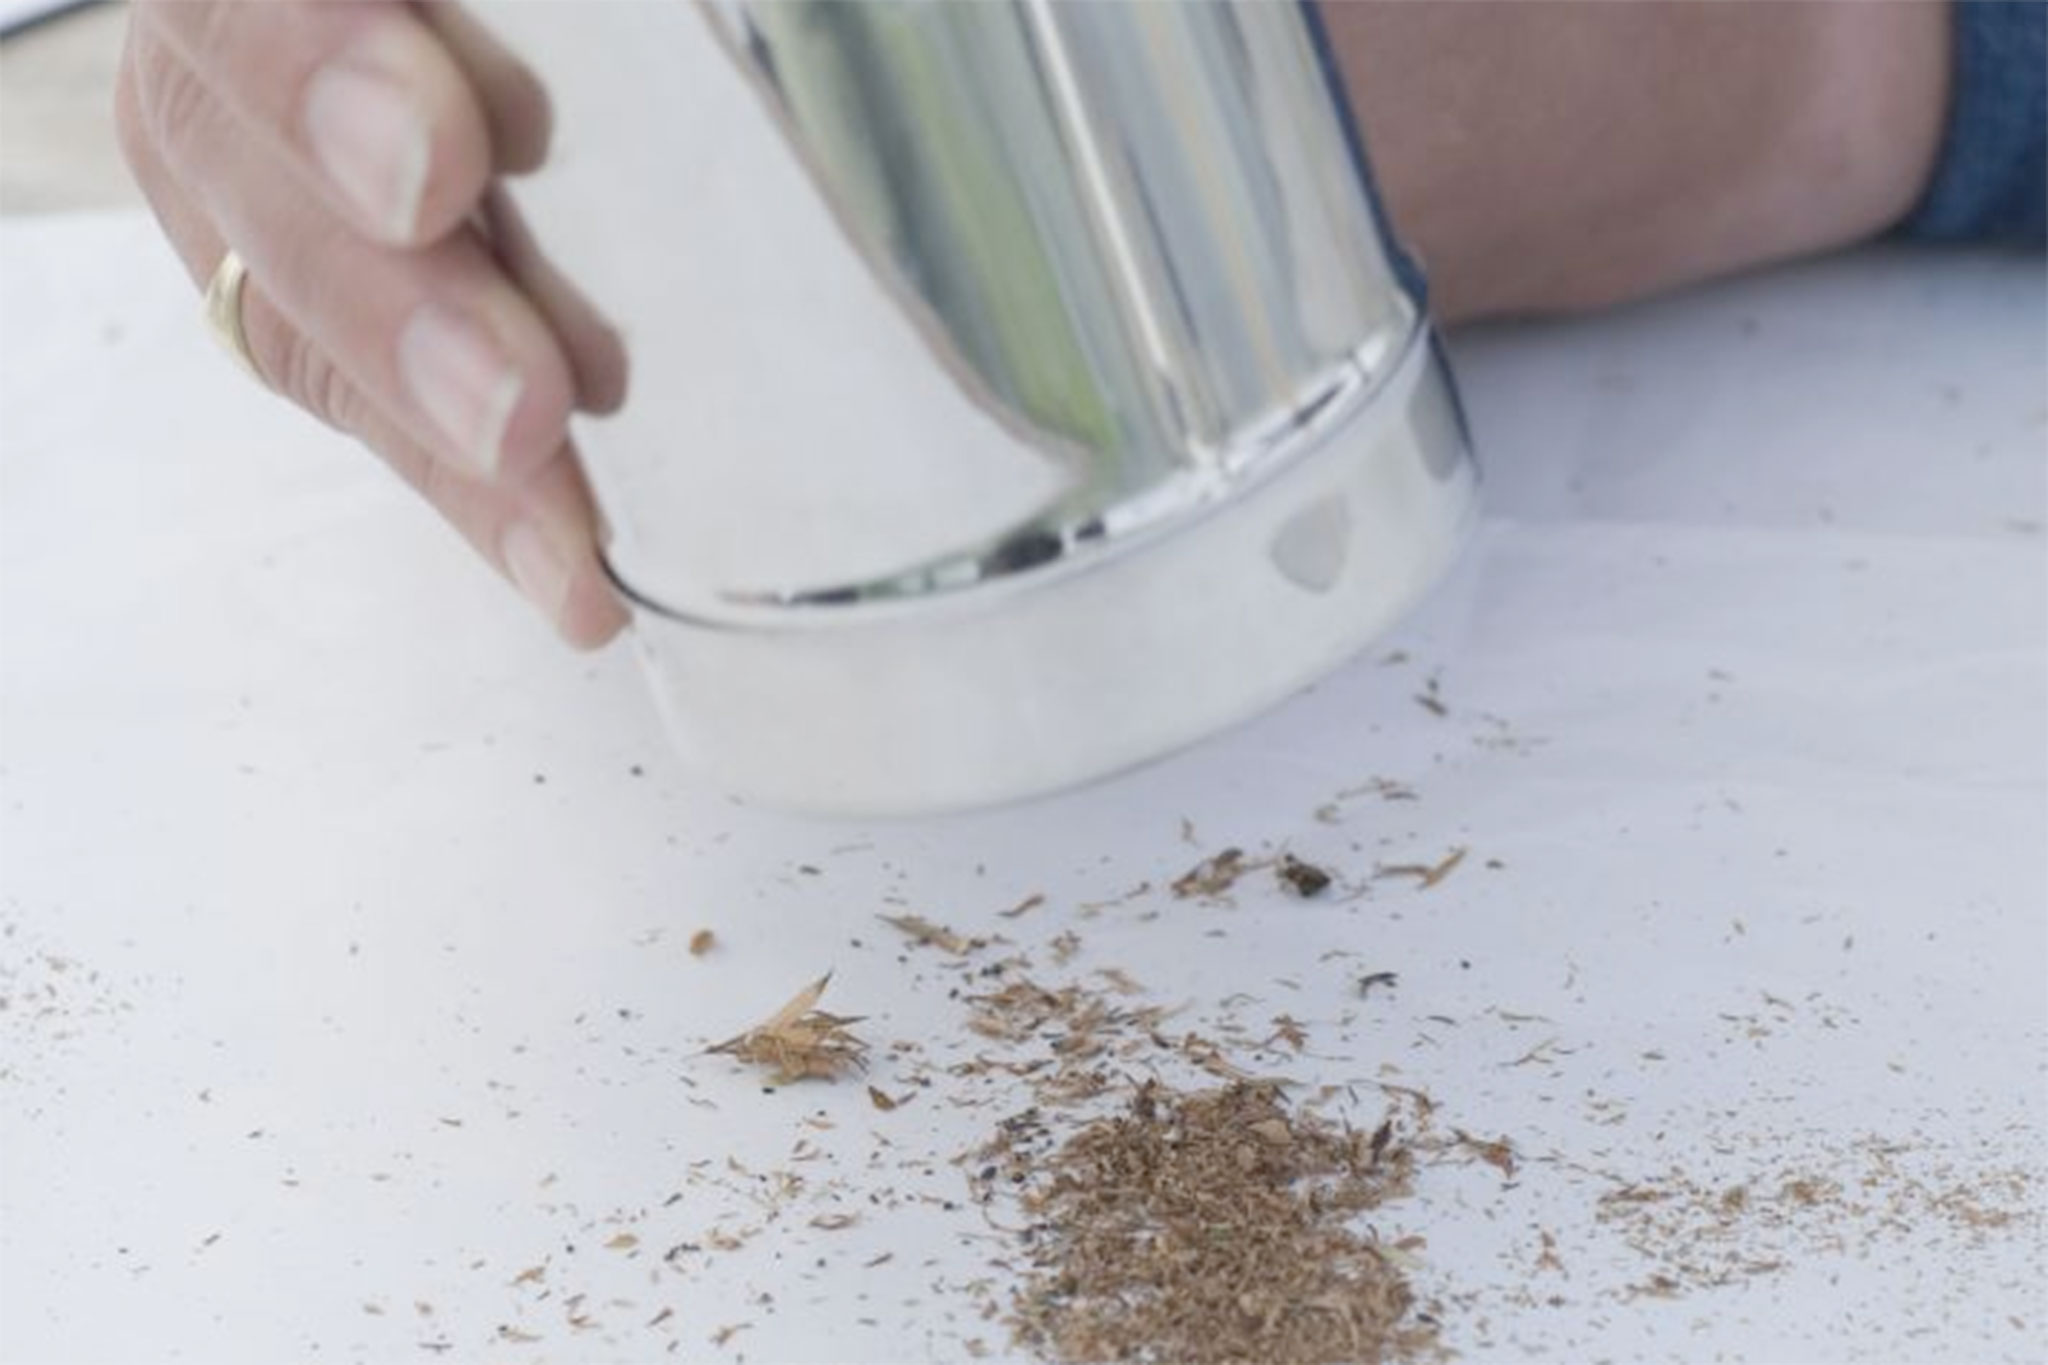 sieving-the-seed-through-a-finer-sieve-2